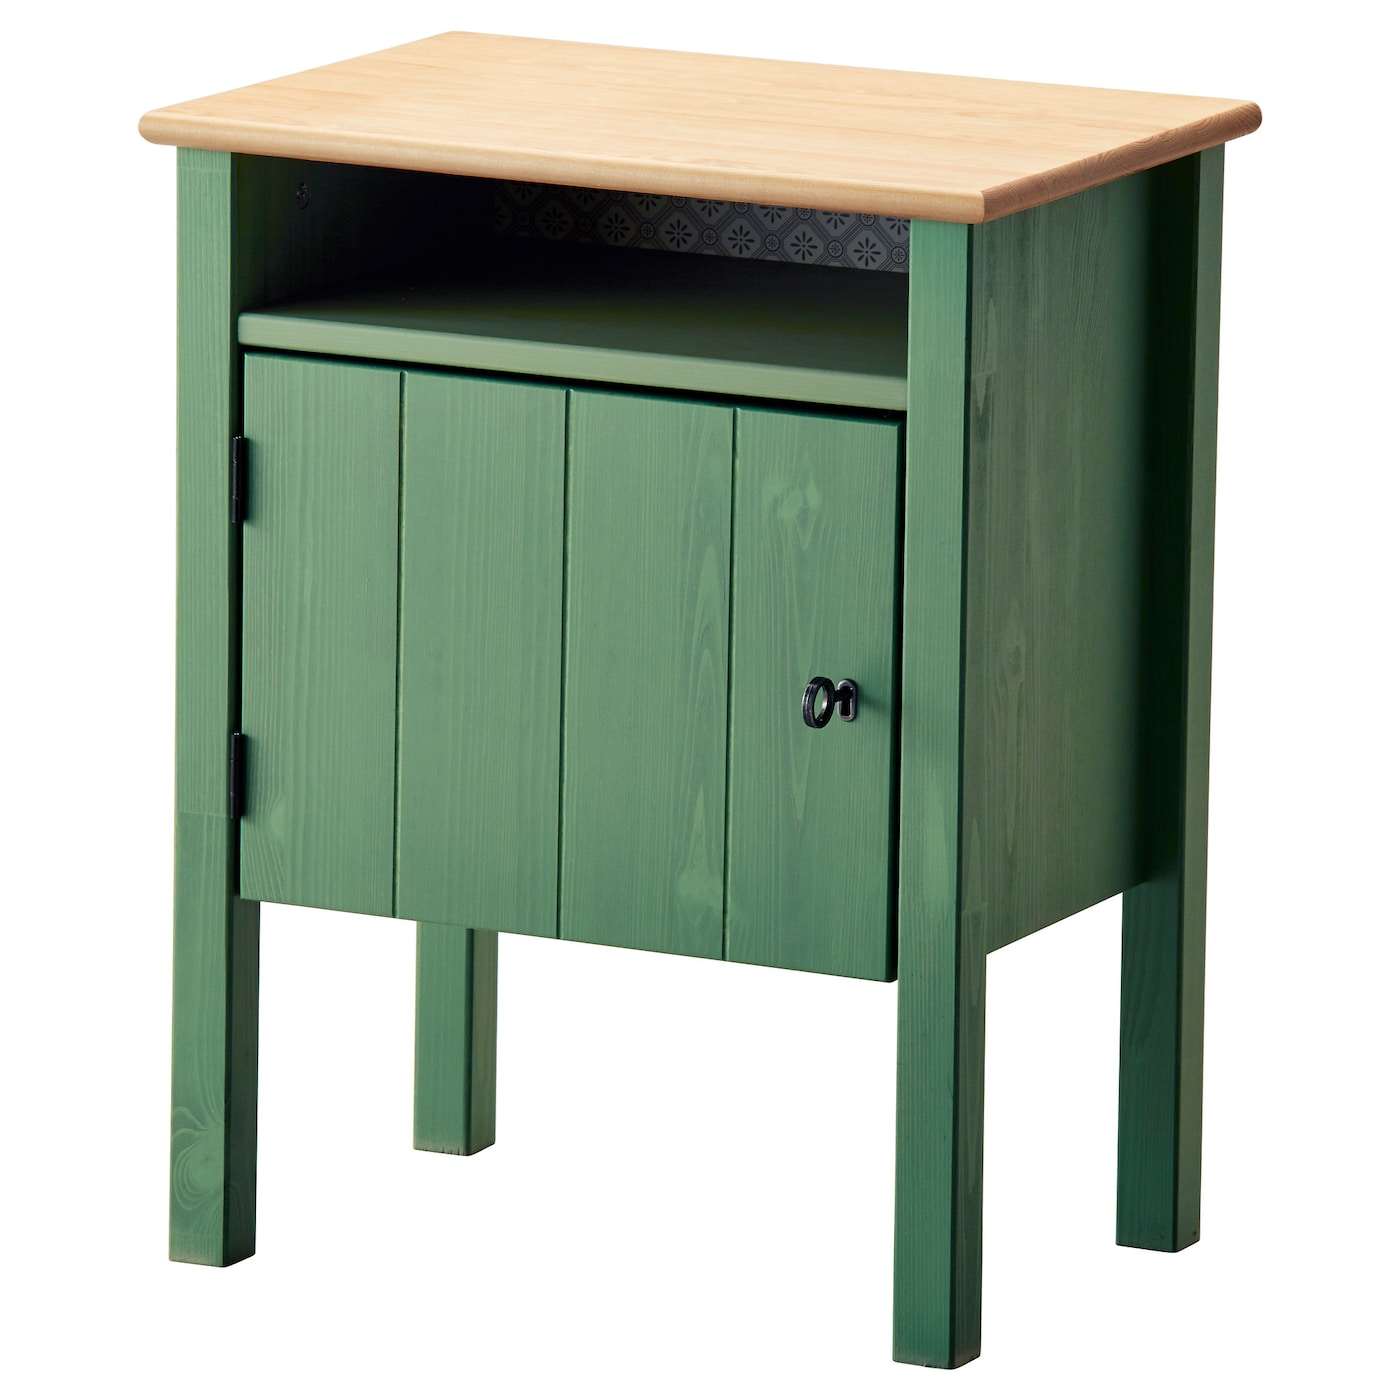 Hurdal bedside table green 49x34 cm ikea for Ikea green side table